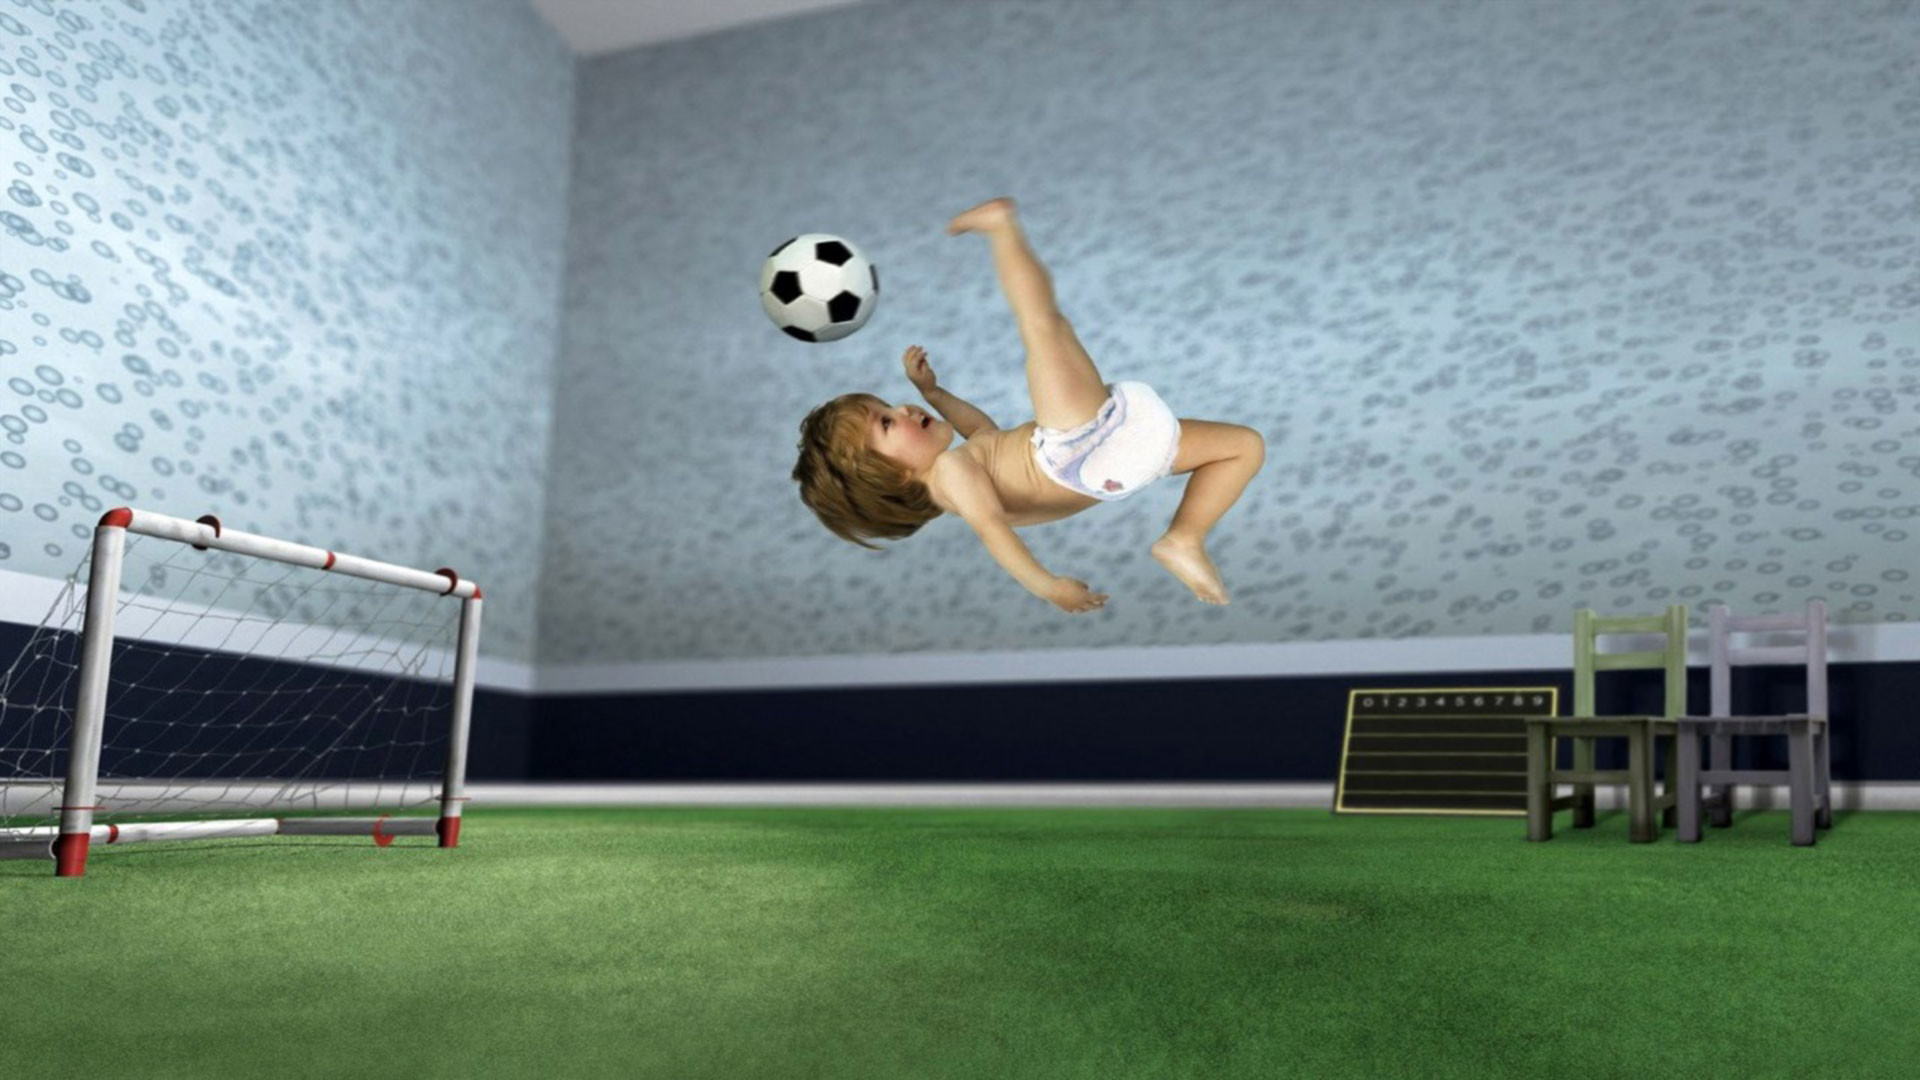 hd pics photos funny baby playing soccer football hd quality desktop  background wallpaper